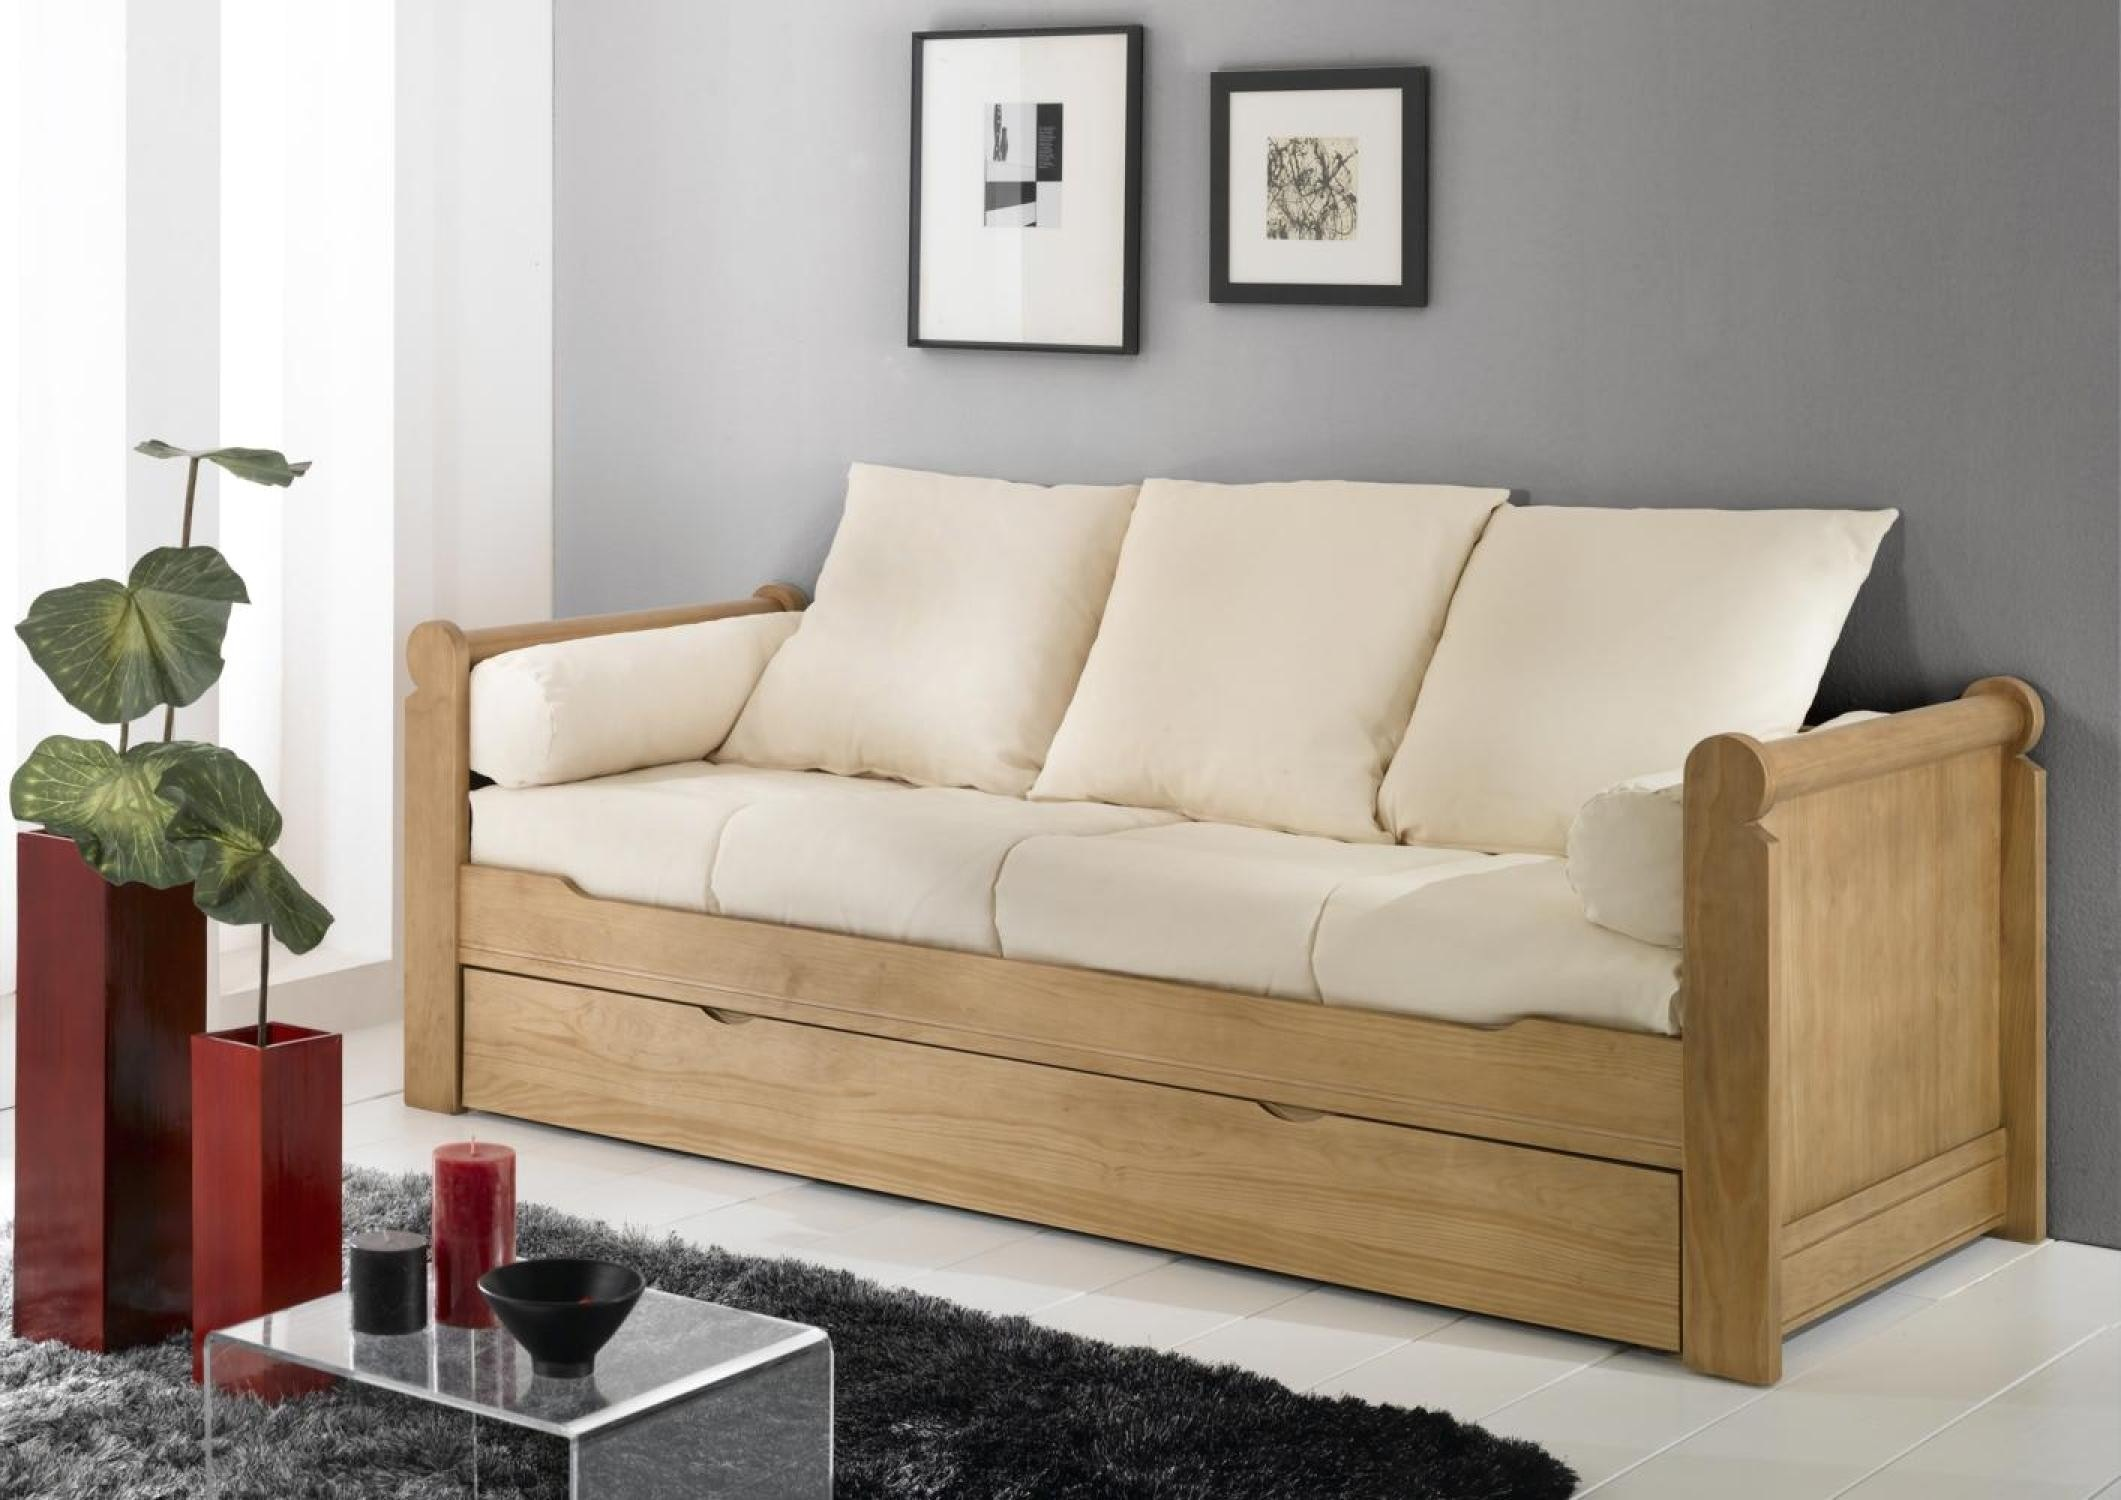 Ikea Canapés Convertibles Luxe Collection Article with Tag Cadre De Lit Rangement 160x200